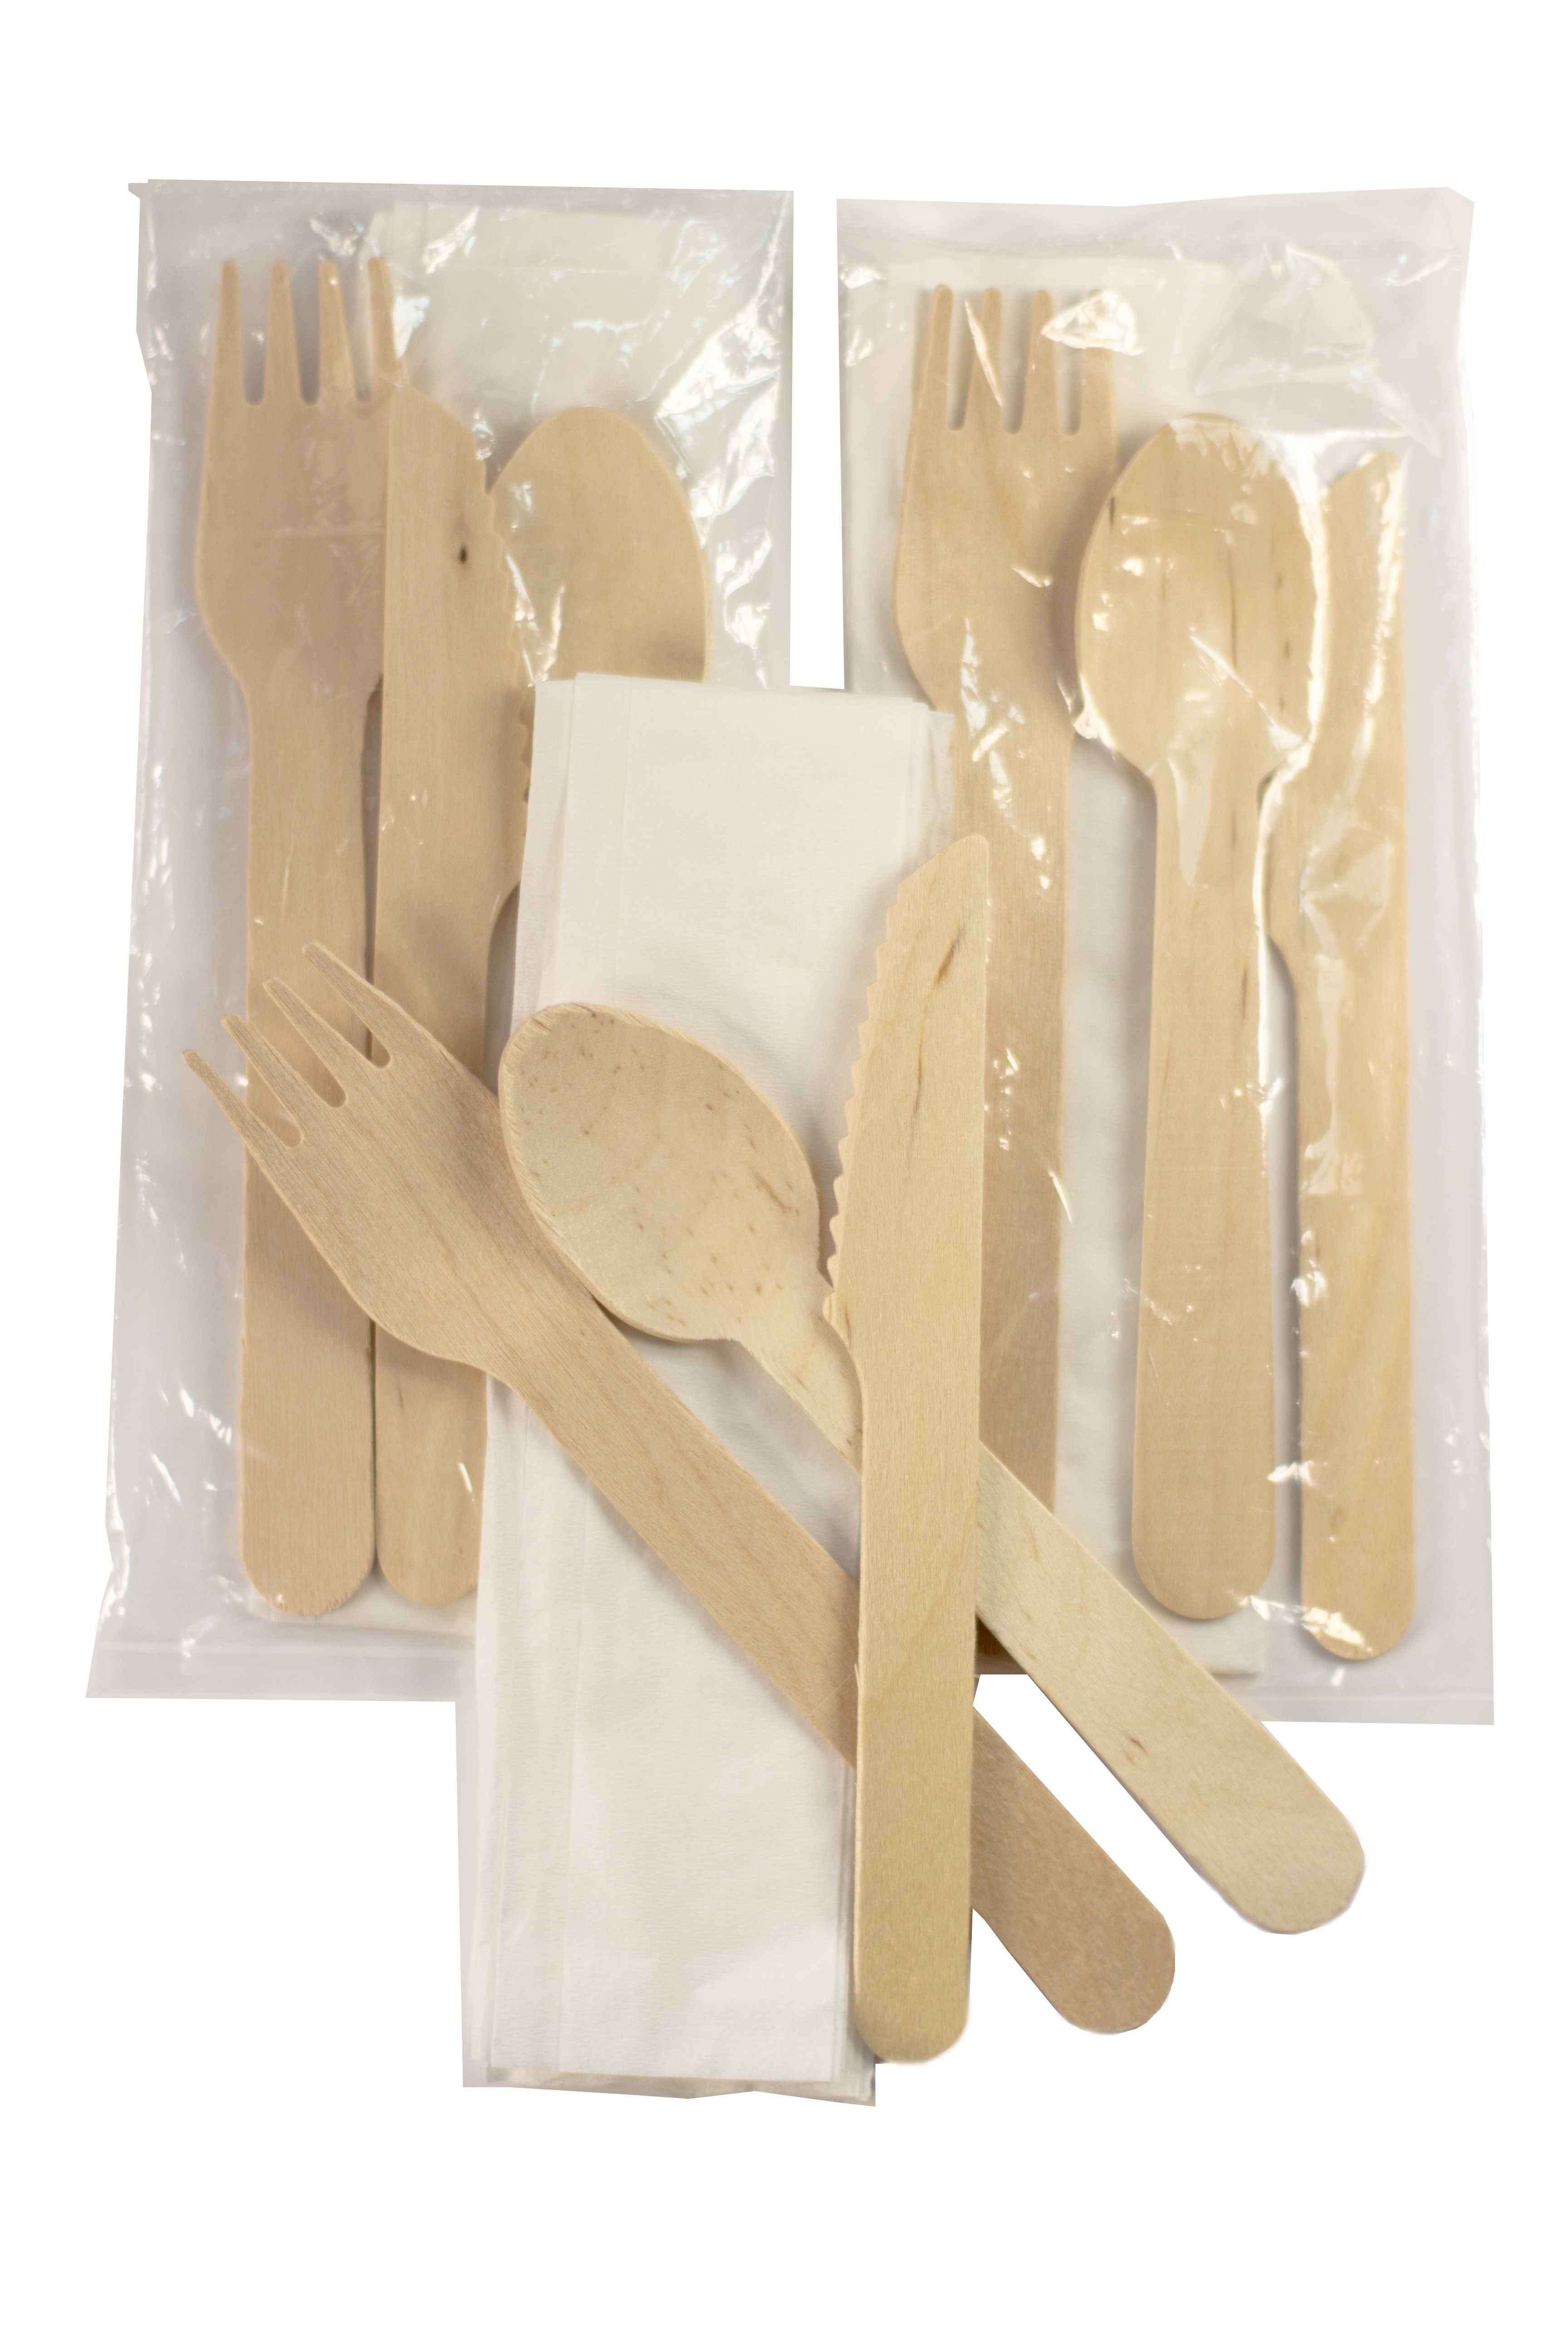 "6"" Green Cutlery Kit Includes Knife, Fork, Spoon and Napkin in a Biodegradable Bag (Pack of 250)(Item# Cutlery Kit 250)"